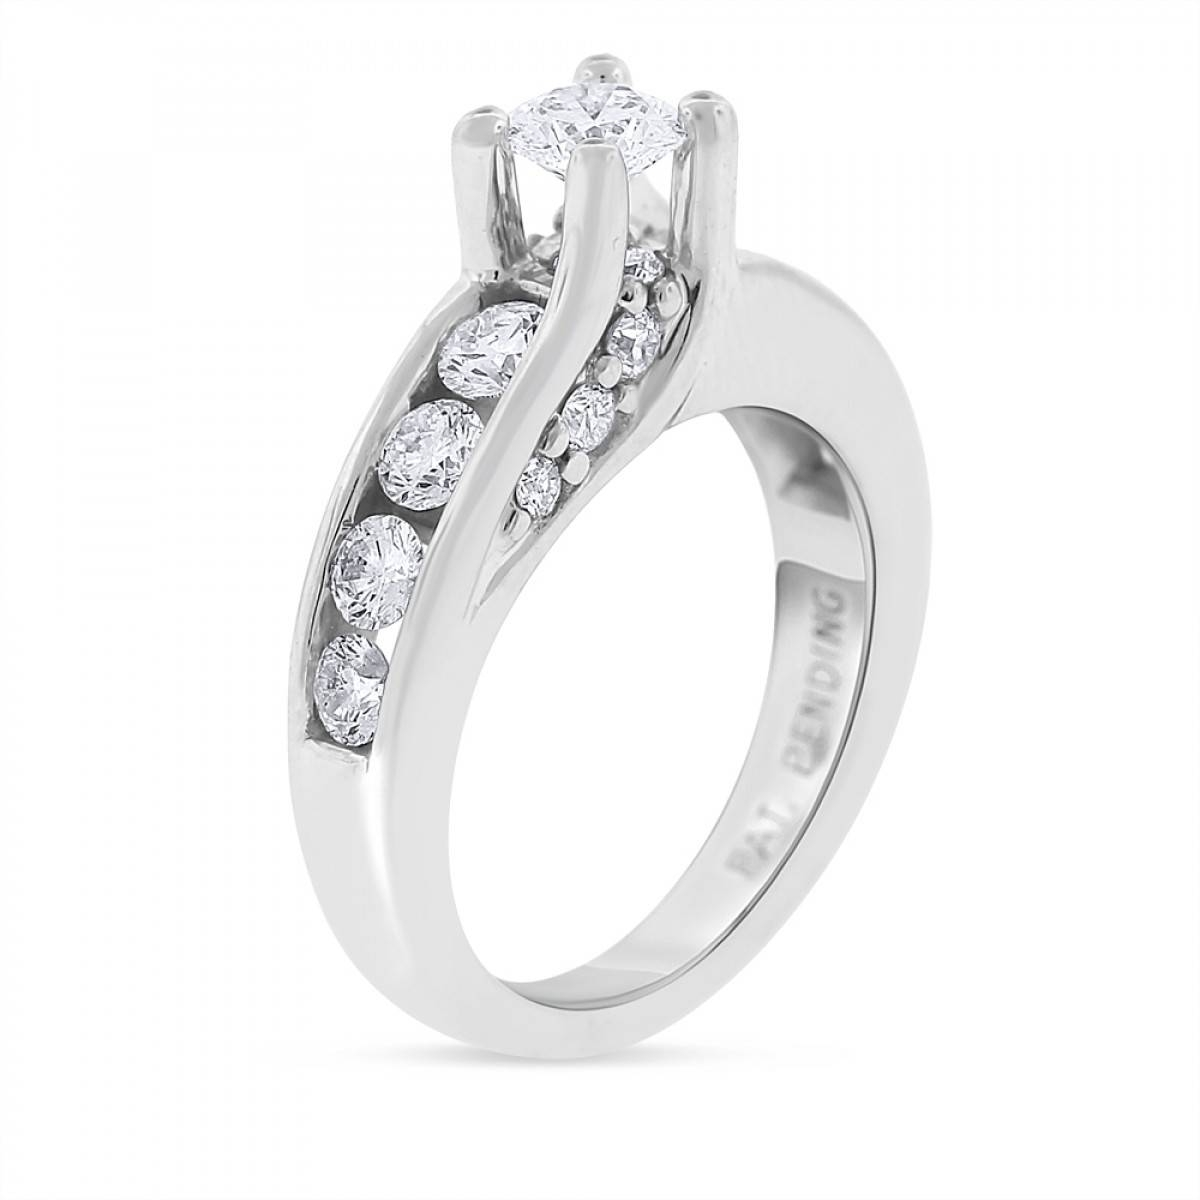 Floating Diamond Engagement Ring Titanium – Floating Diamond Throughout Floating Diamond Engagement Rings (View 7 of 15)